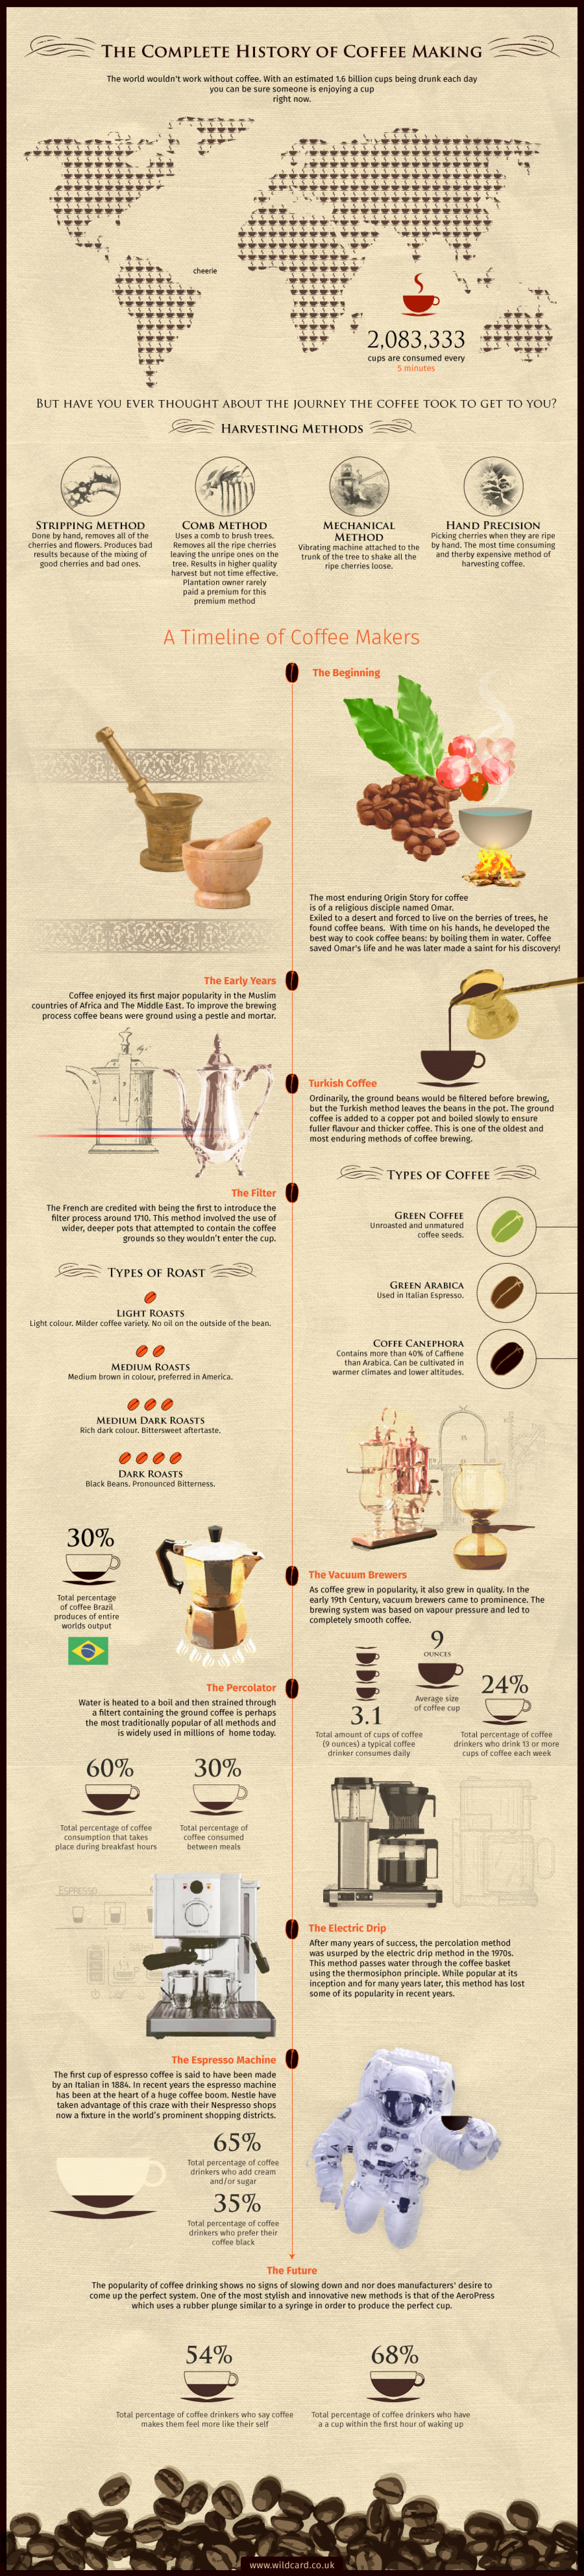 Complete History of Coffee Making Infographic